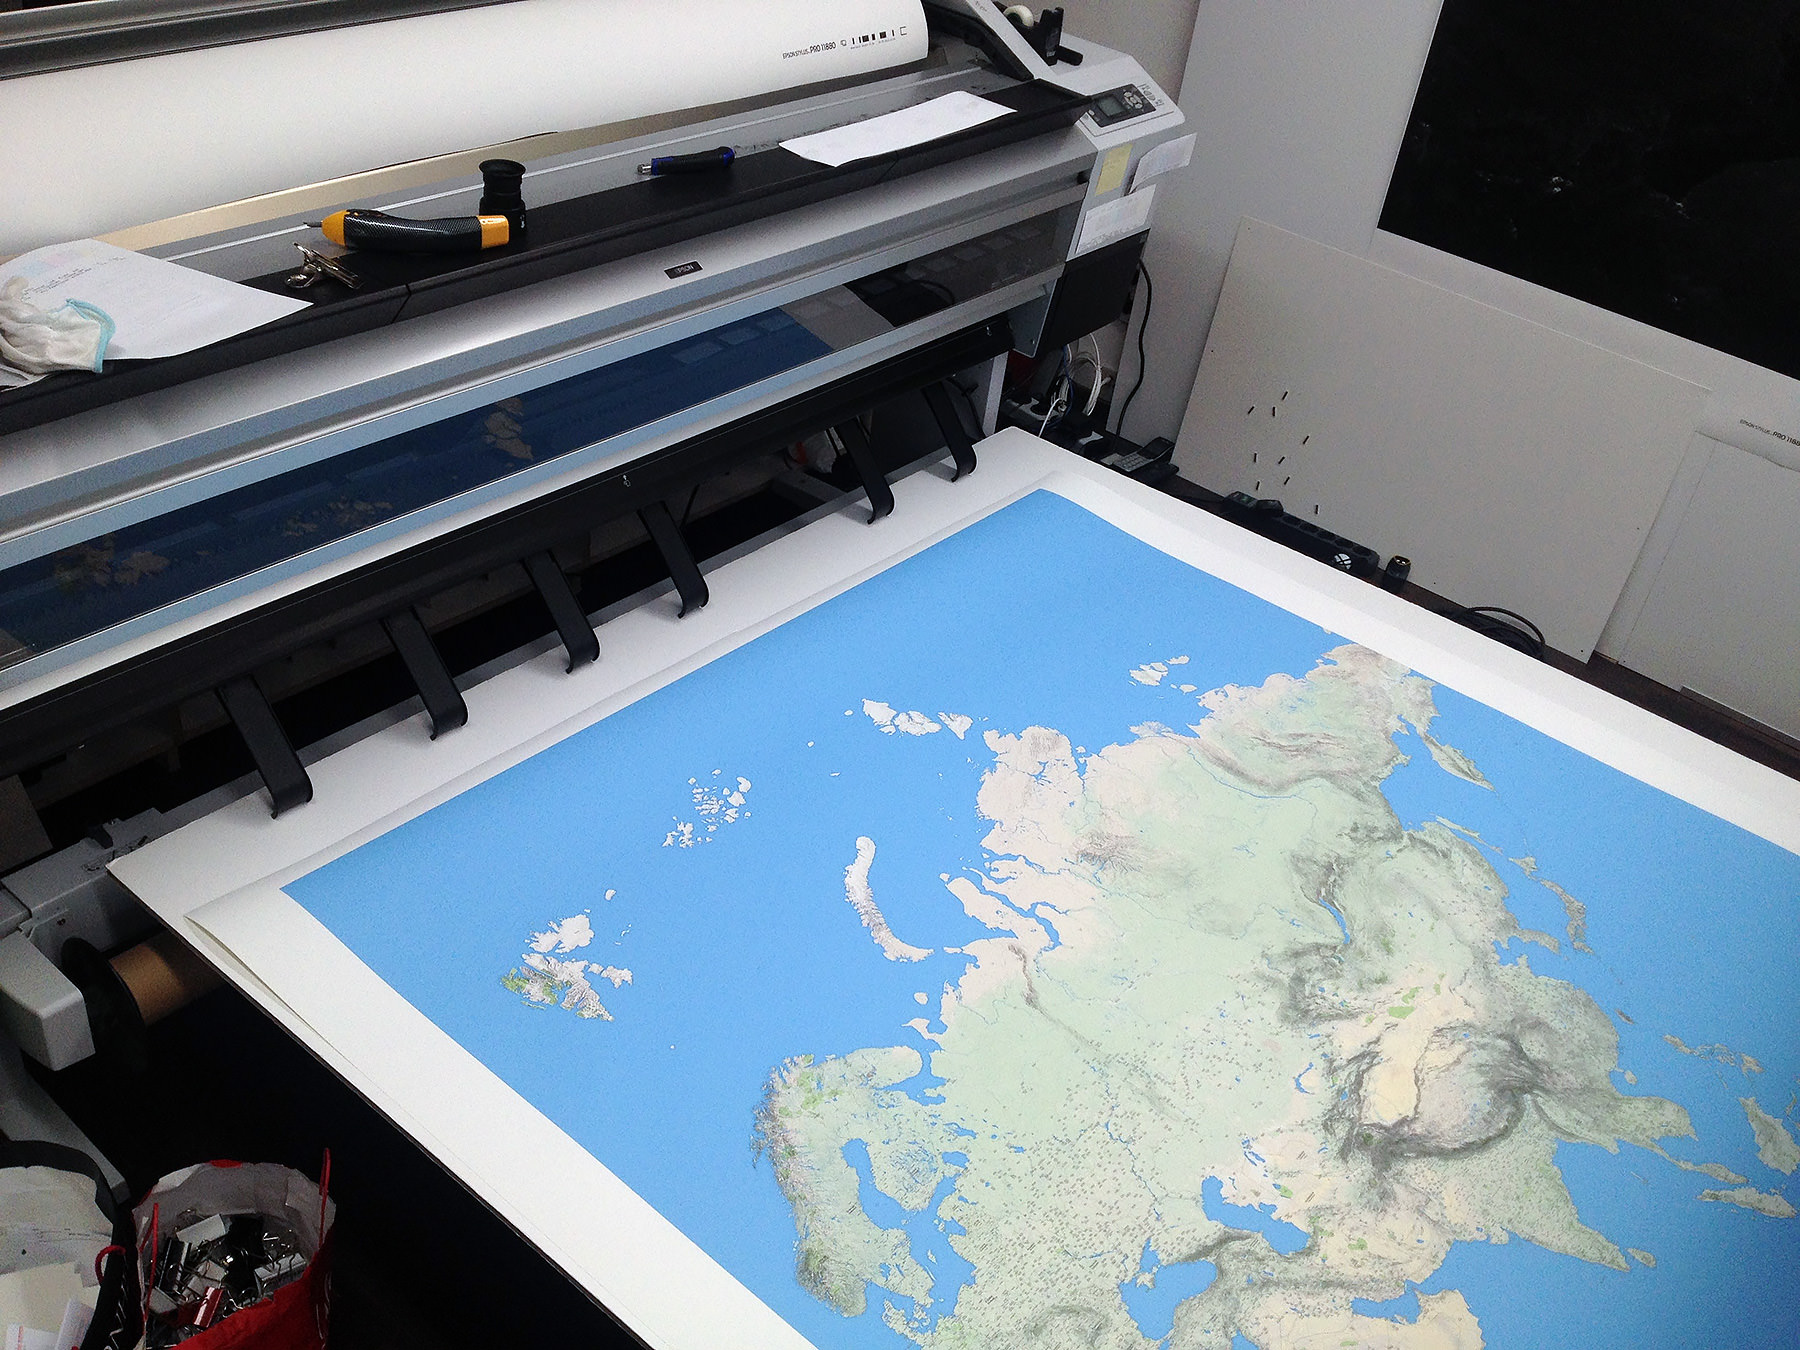 That's what I call a printer. And a map!